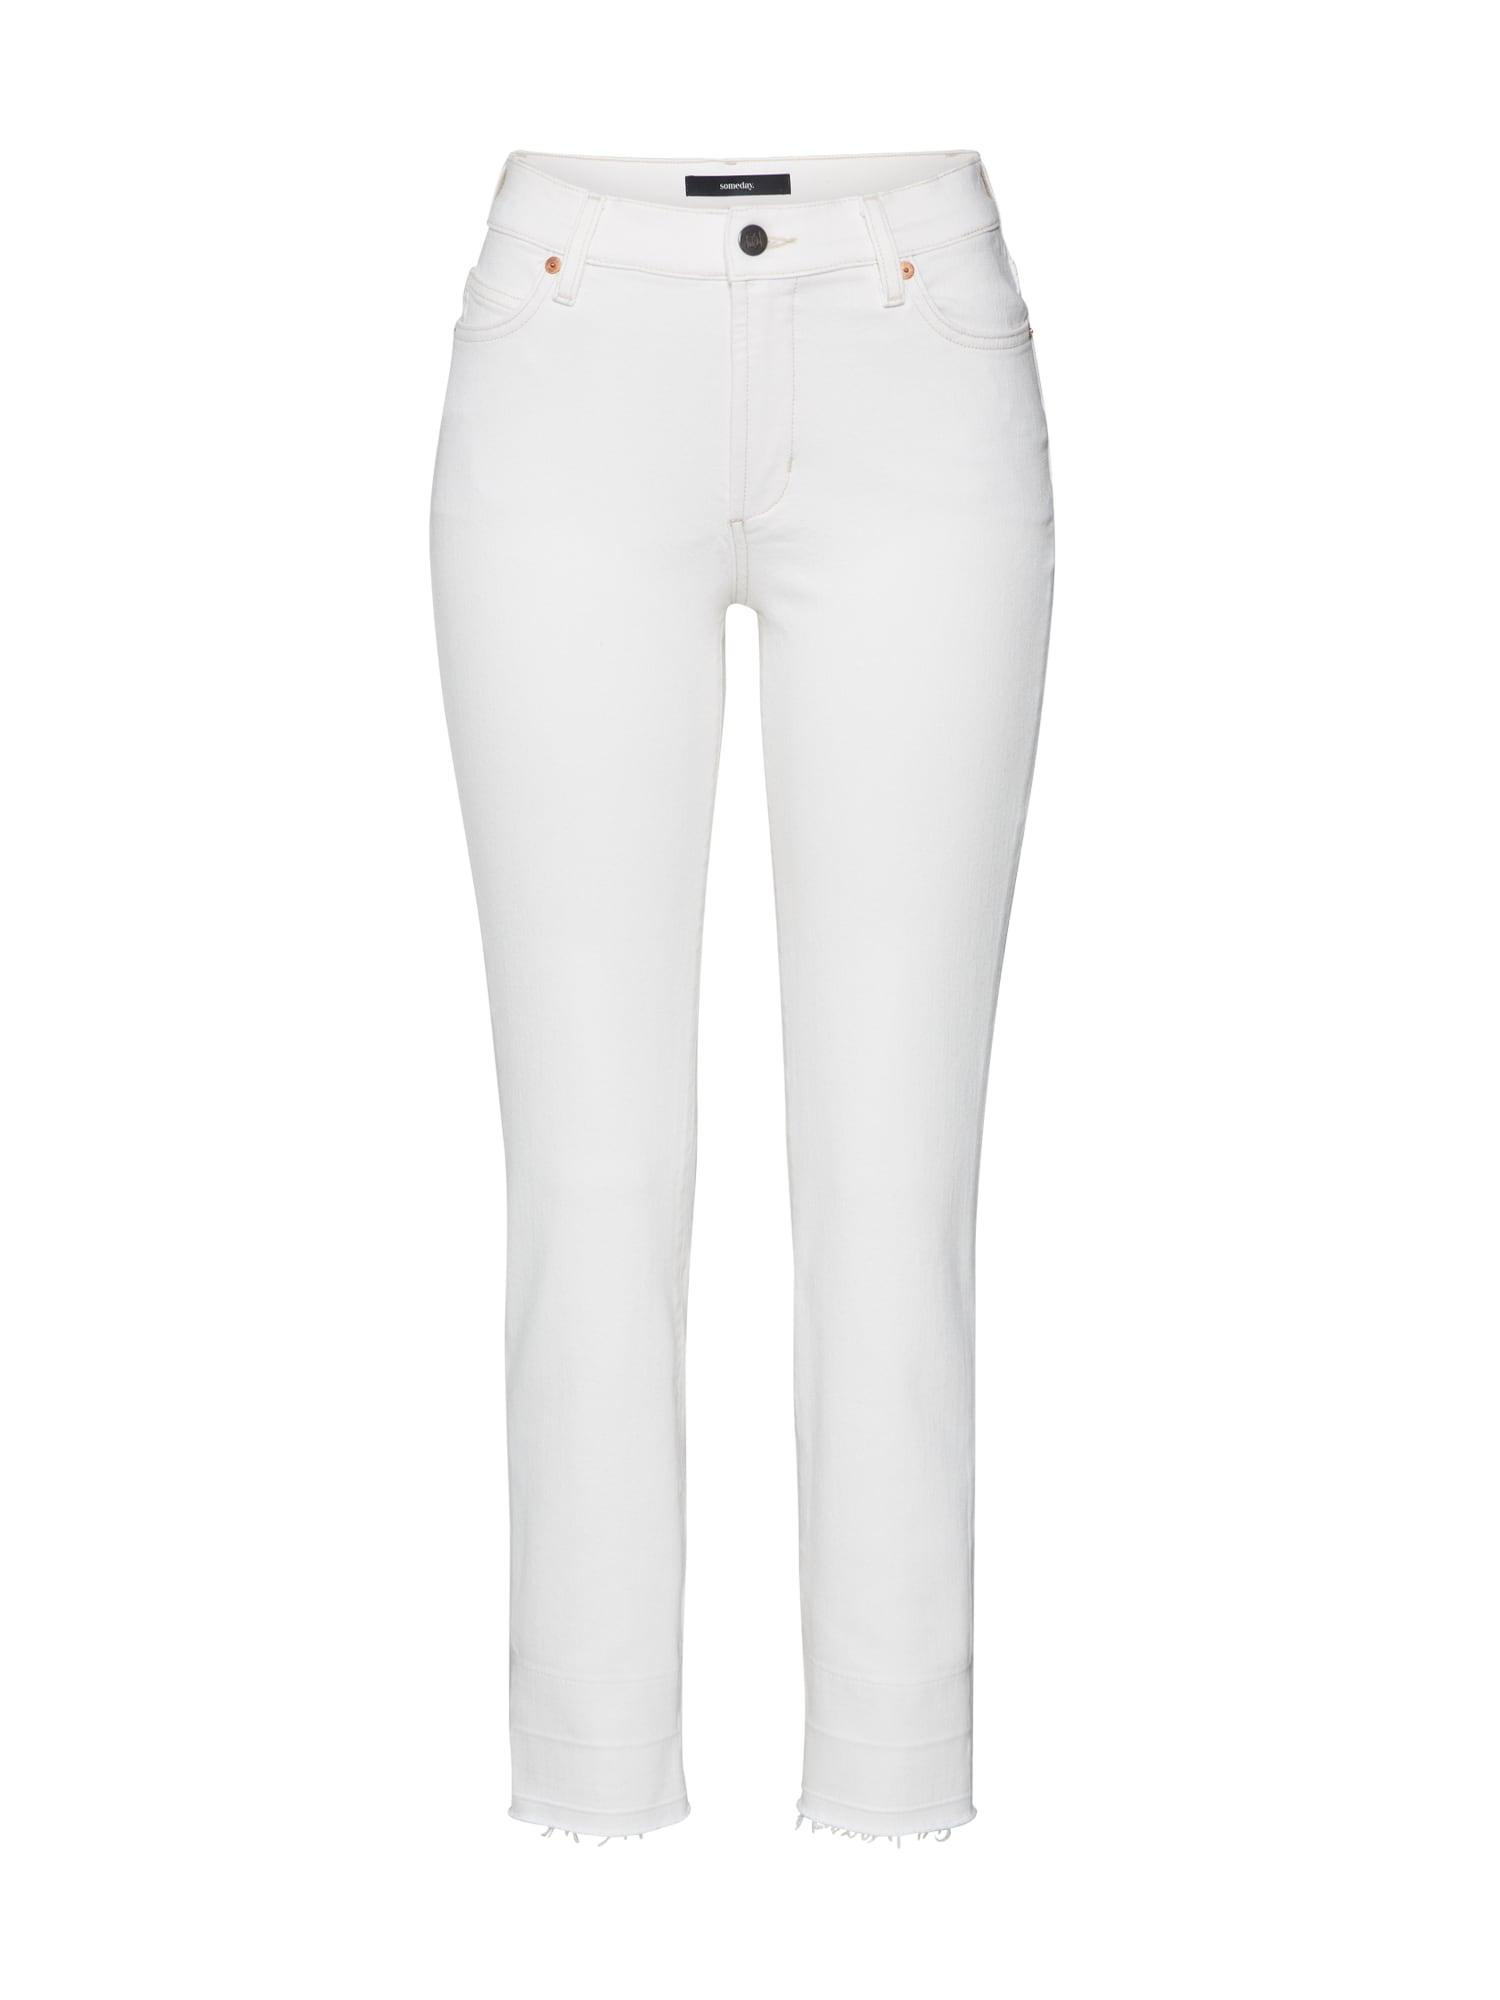 Someday Jeans 'Cadey' white denim